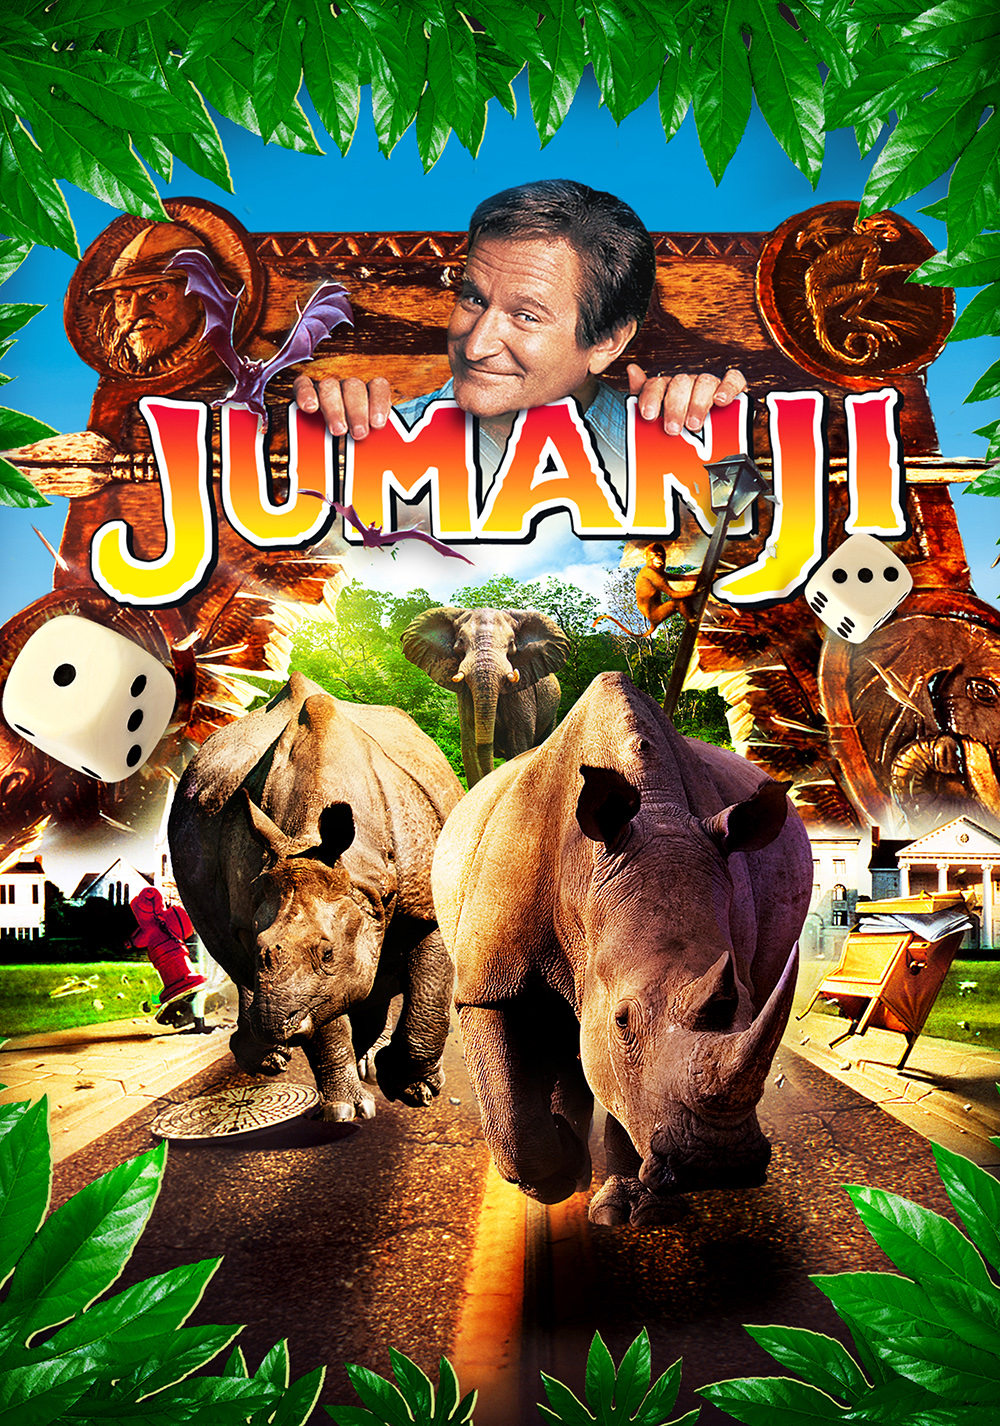 Download Jumanji (1995) Full Movie In Hindi-English (Dual Audio) 480p [330MB] | 720p [1.4GB]